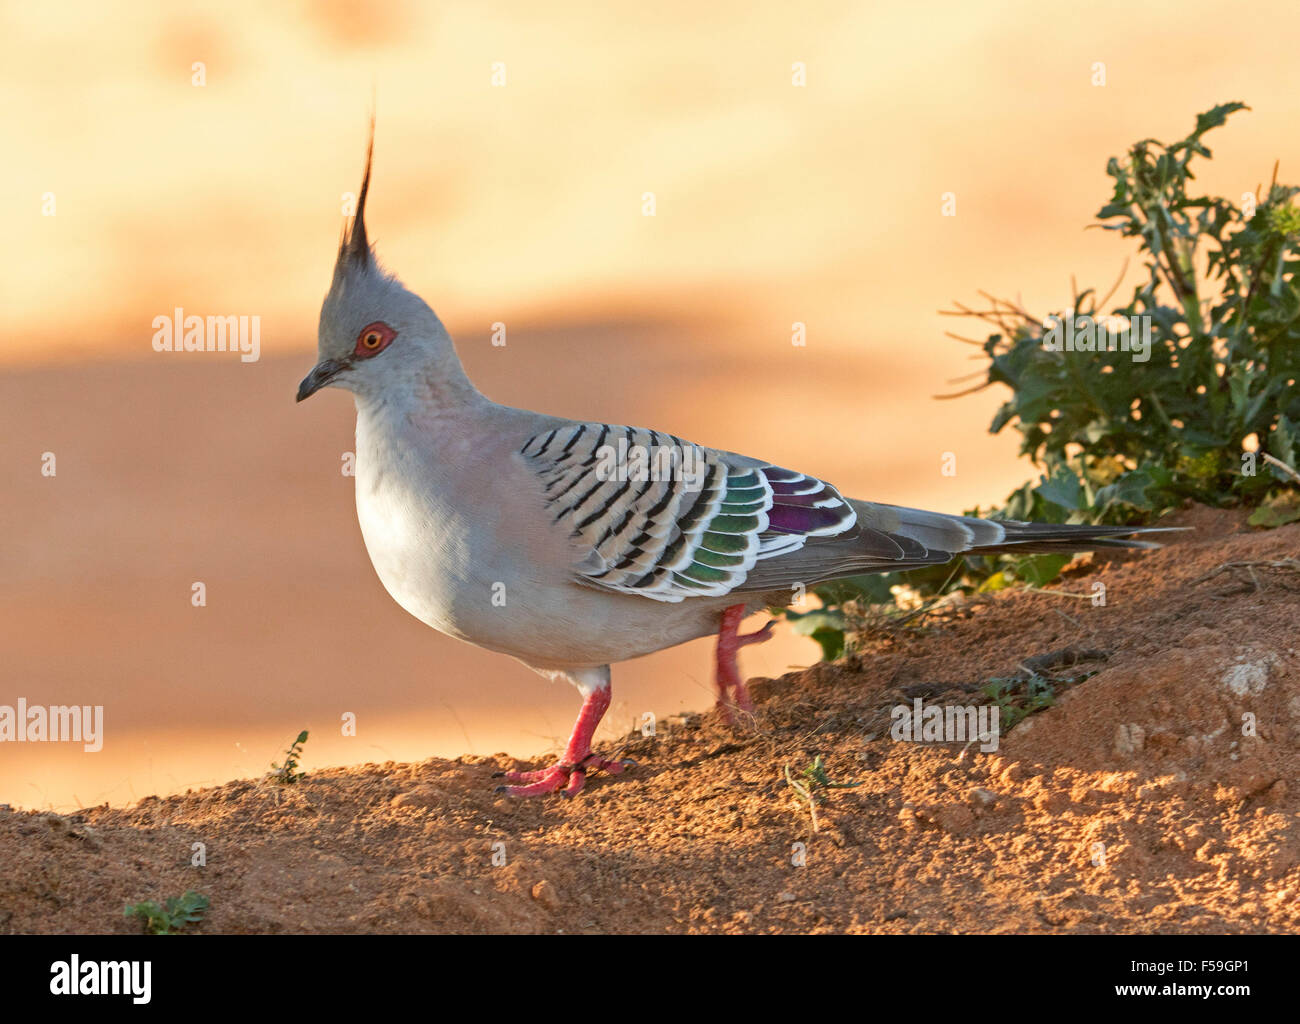 Colourful crested pigeon, Ocyphaps lophotes, Australian native bird with vivid red legs & decorative striped - Stock Image